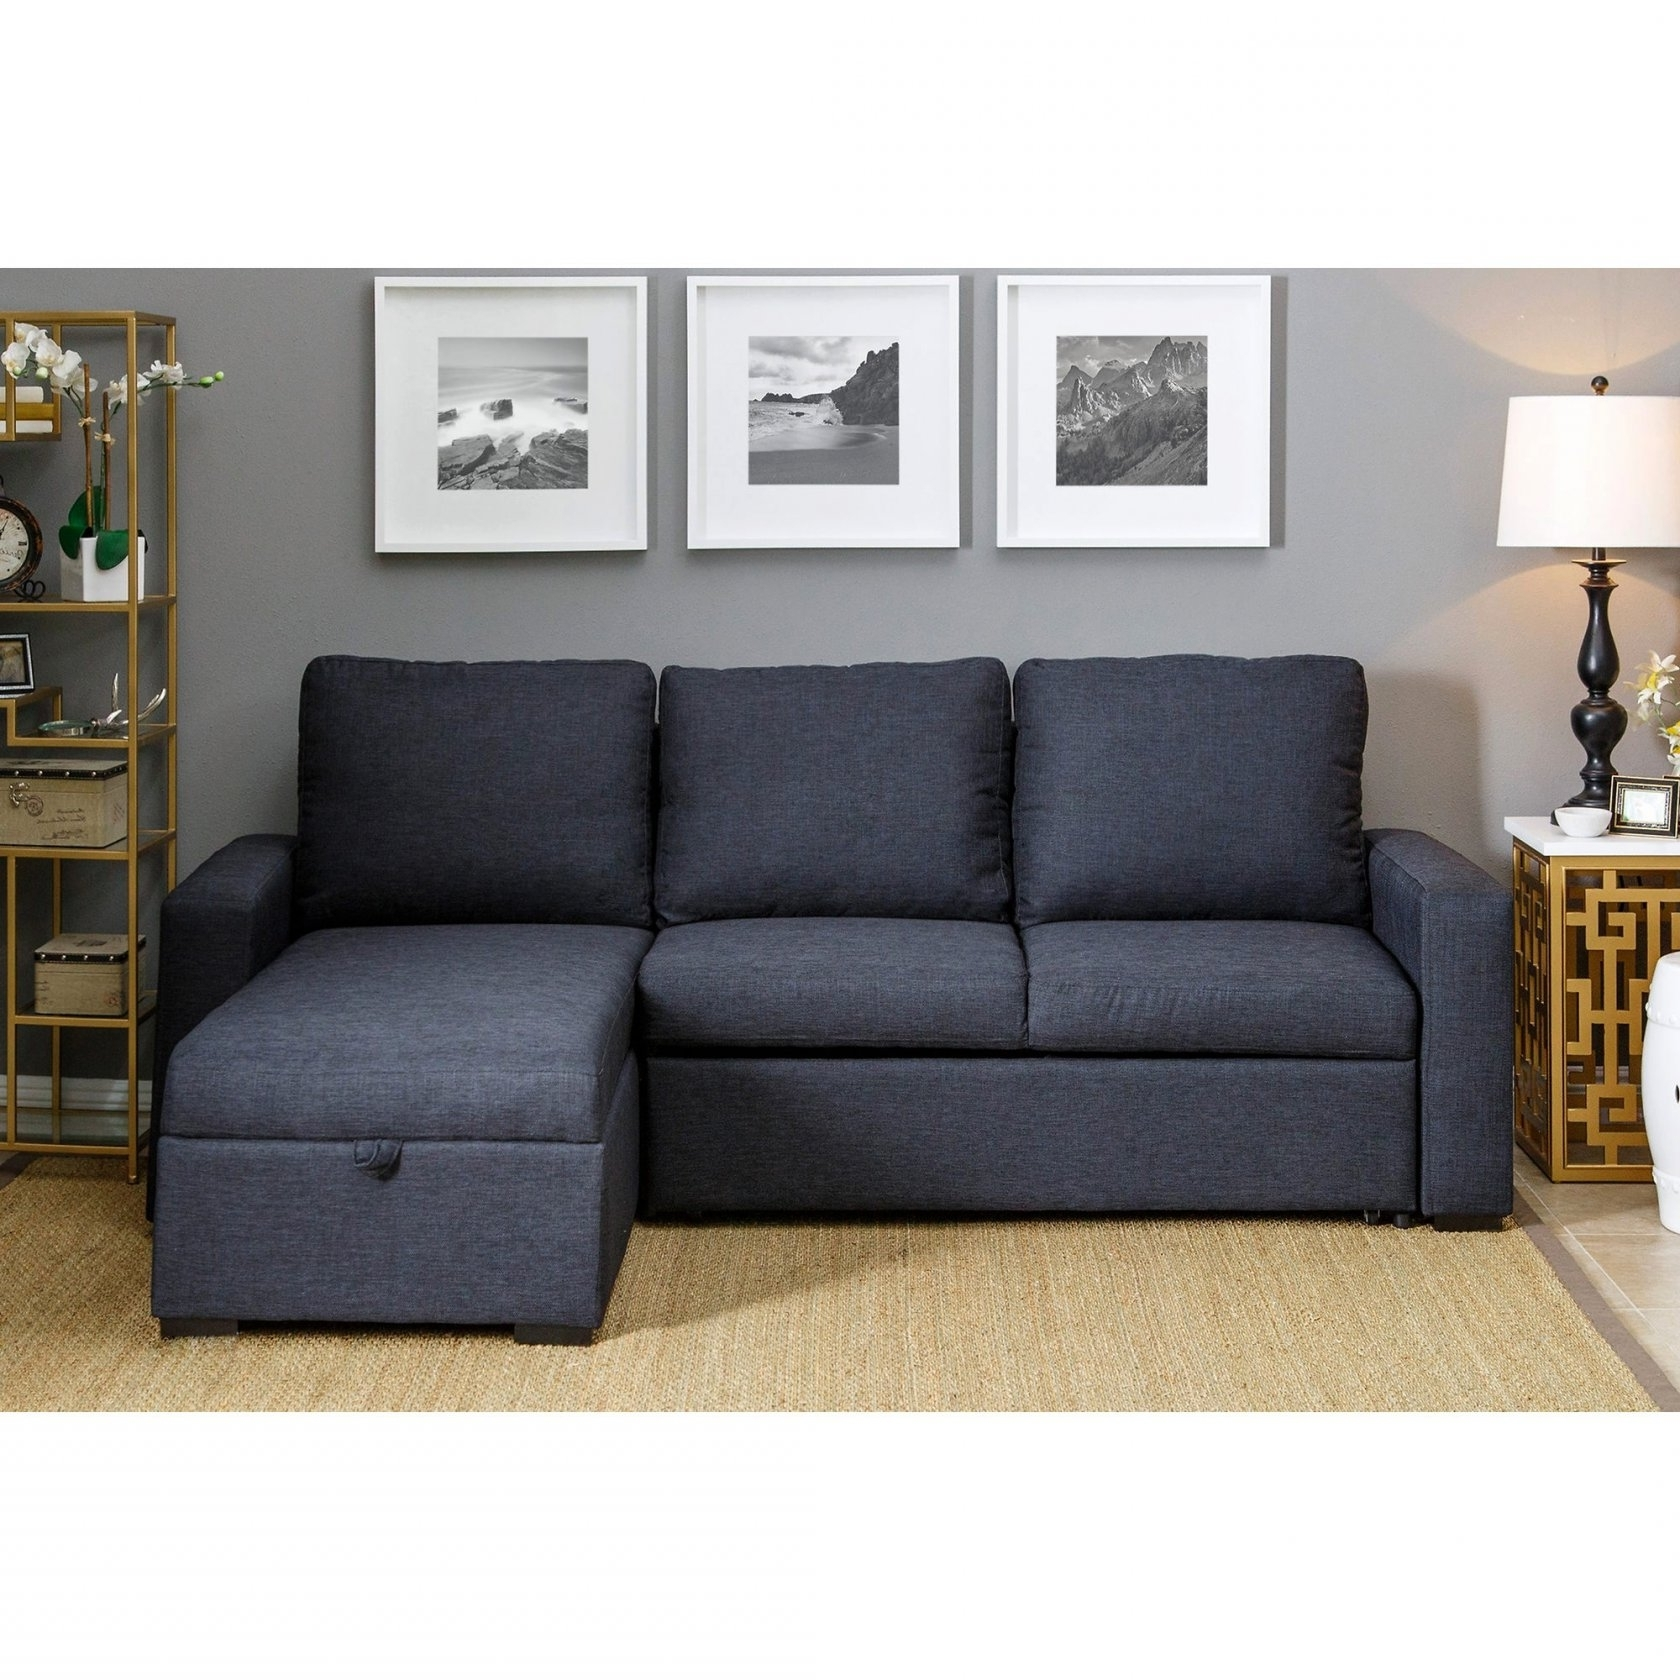 Favorite Abbyson Living Sectional Sofa #5 Excellent Abbyson Living Regarding Charlotte Sectional Sofas (View 9 of 15)